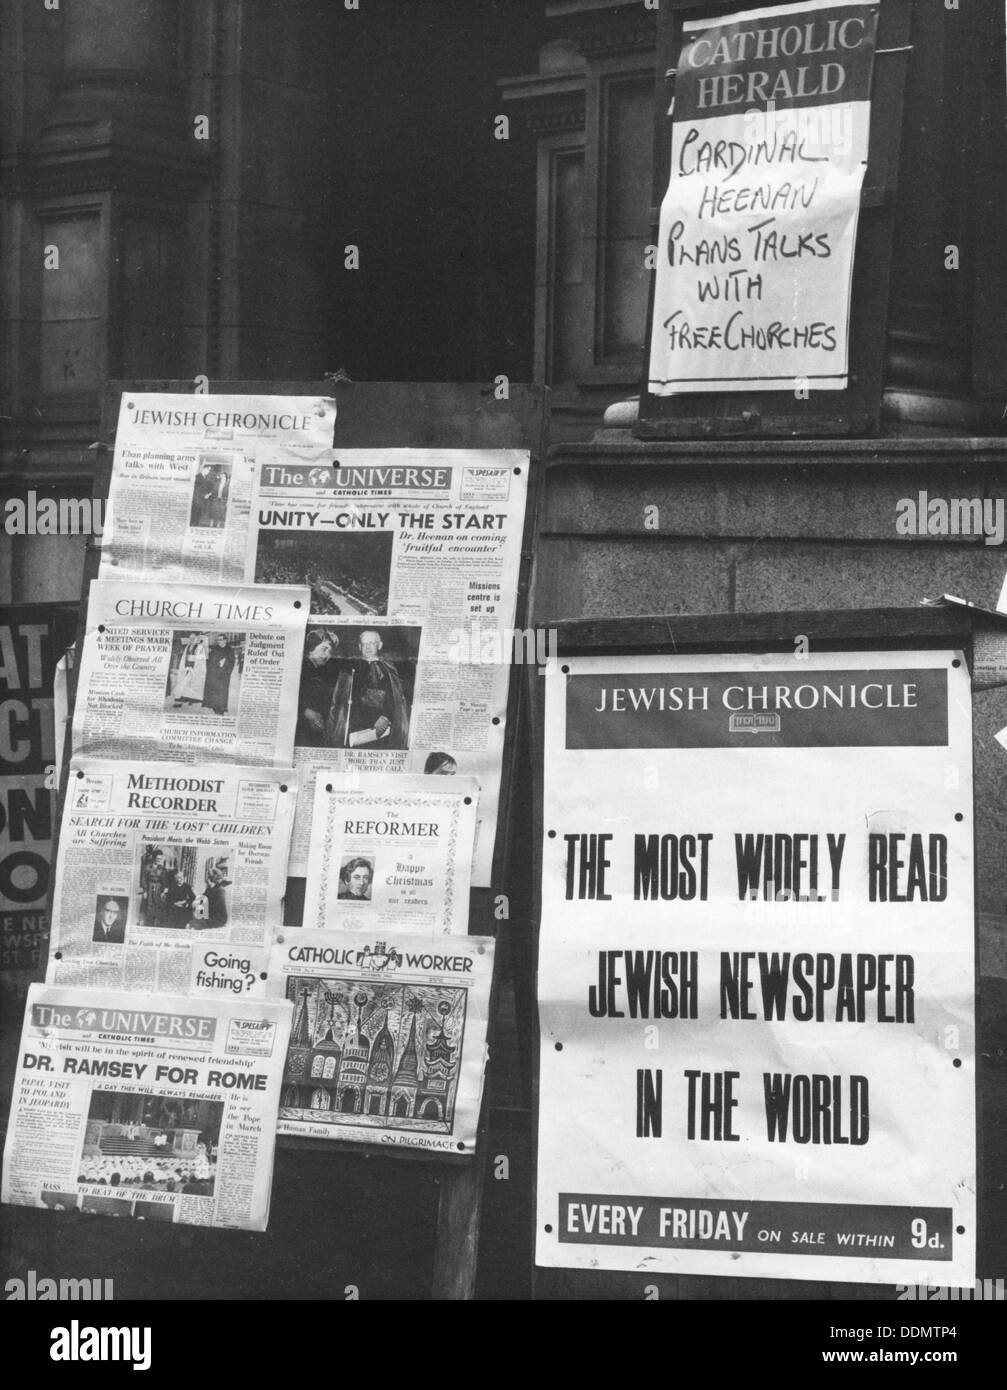 The Jewish Chronicle on sale outside Westminster Cathedral, London, 1966. Artist: EH Emanuel - Stock Image